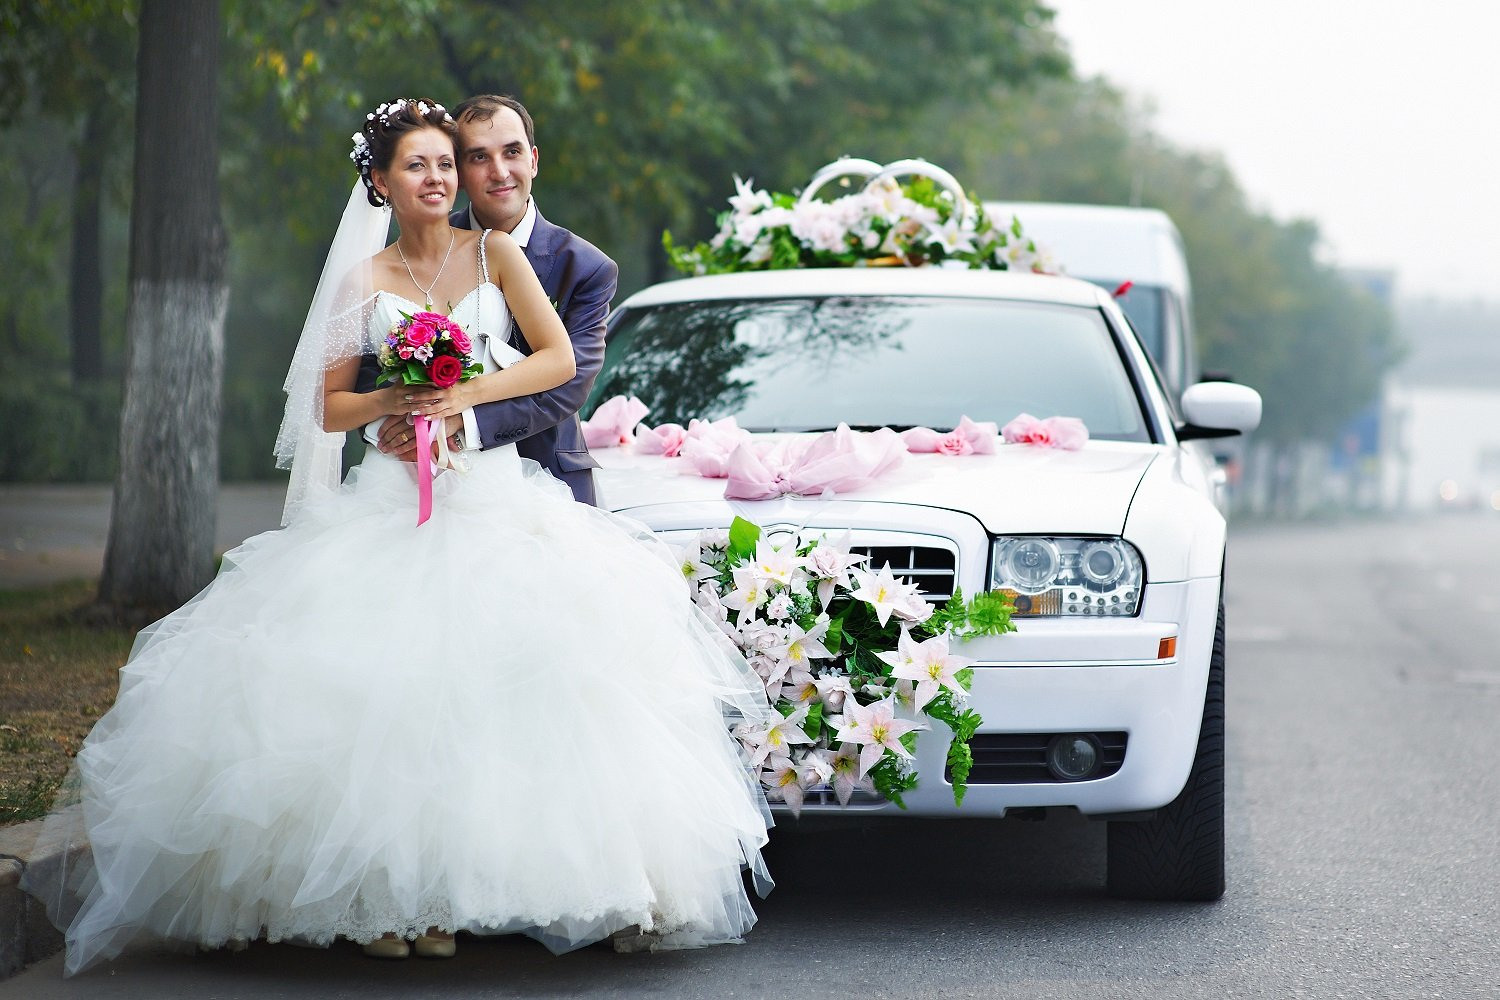 How to Decorate Limousine